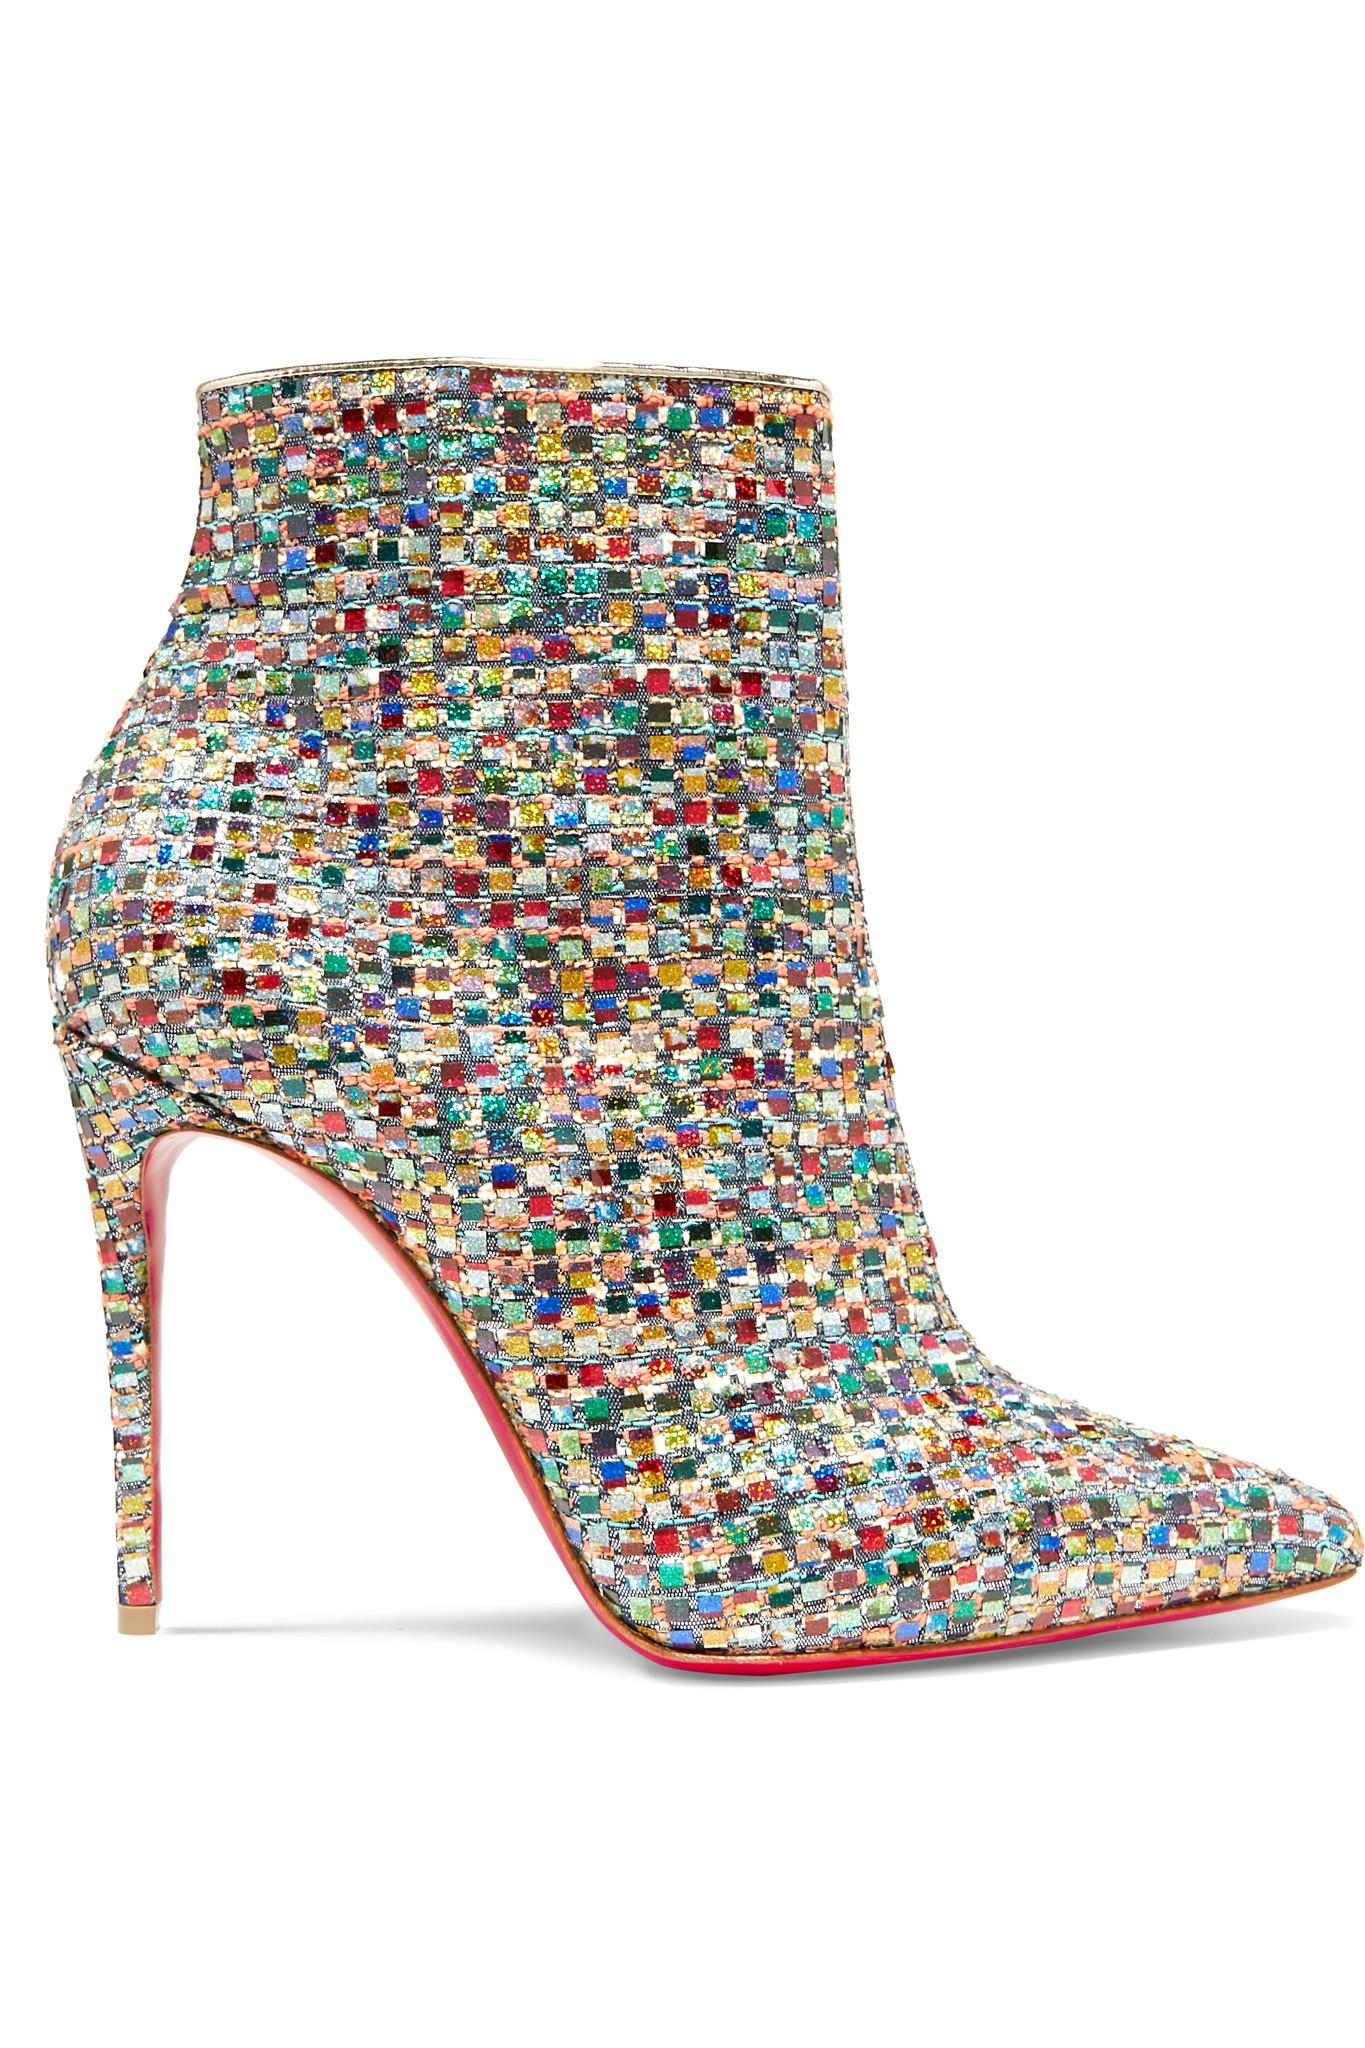 05811ca0f11 Christian Louboutin. Women s Metallic So Kate 100 Embellished Tweed Ankle  Boots